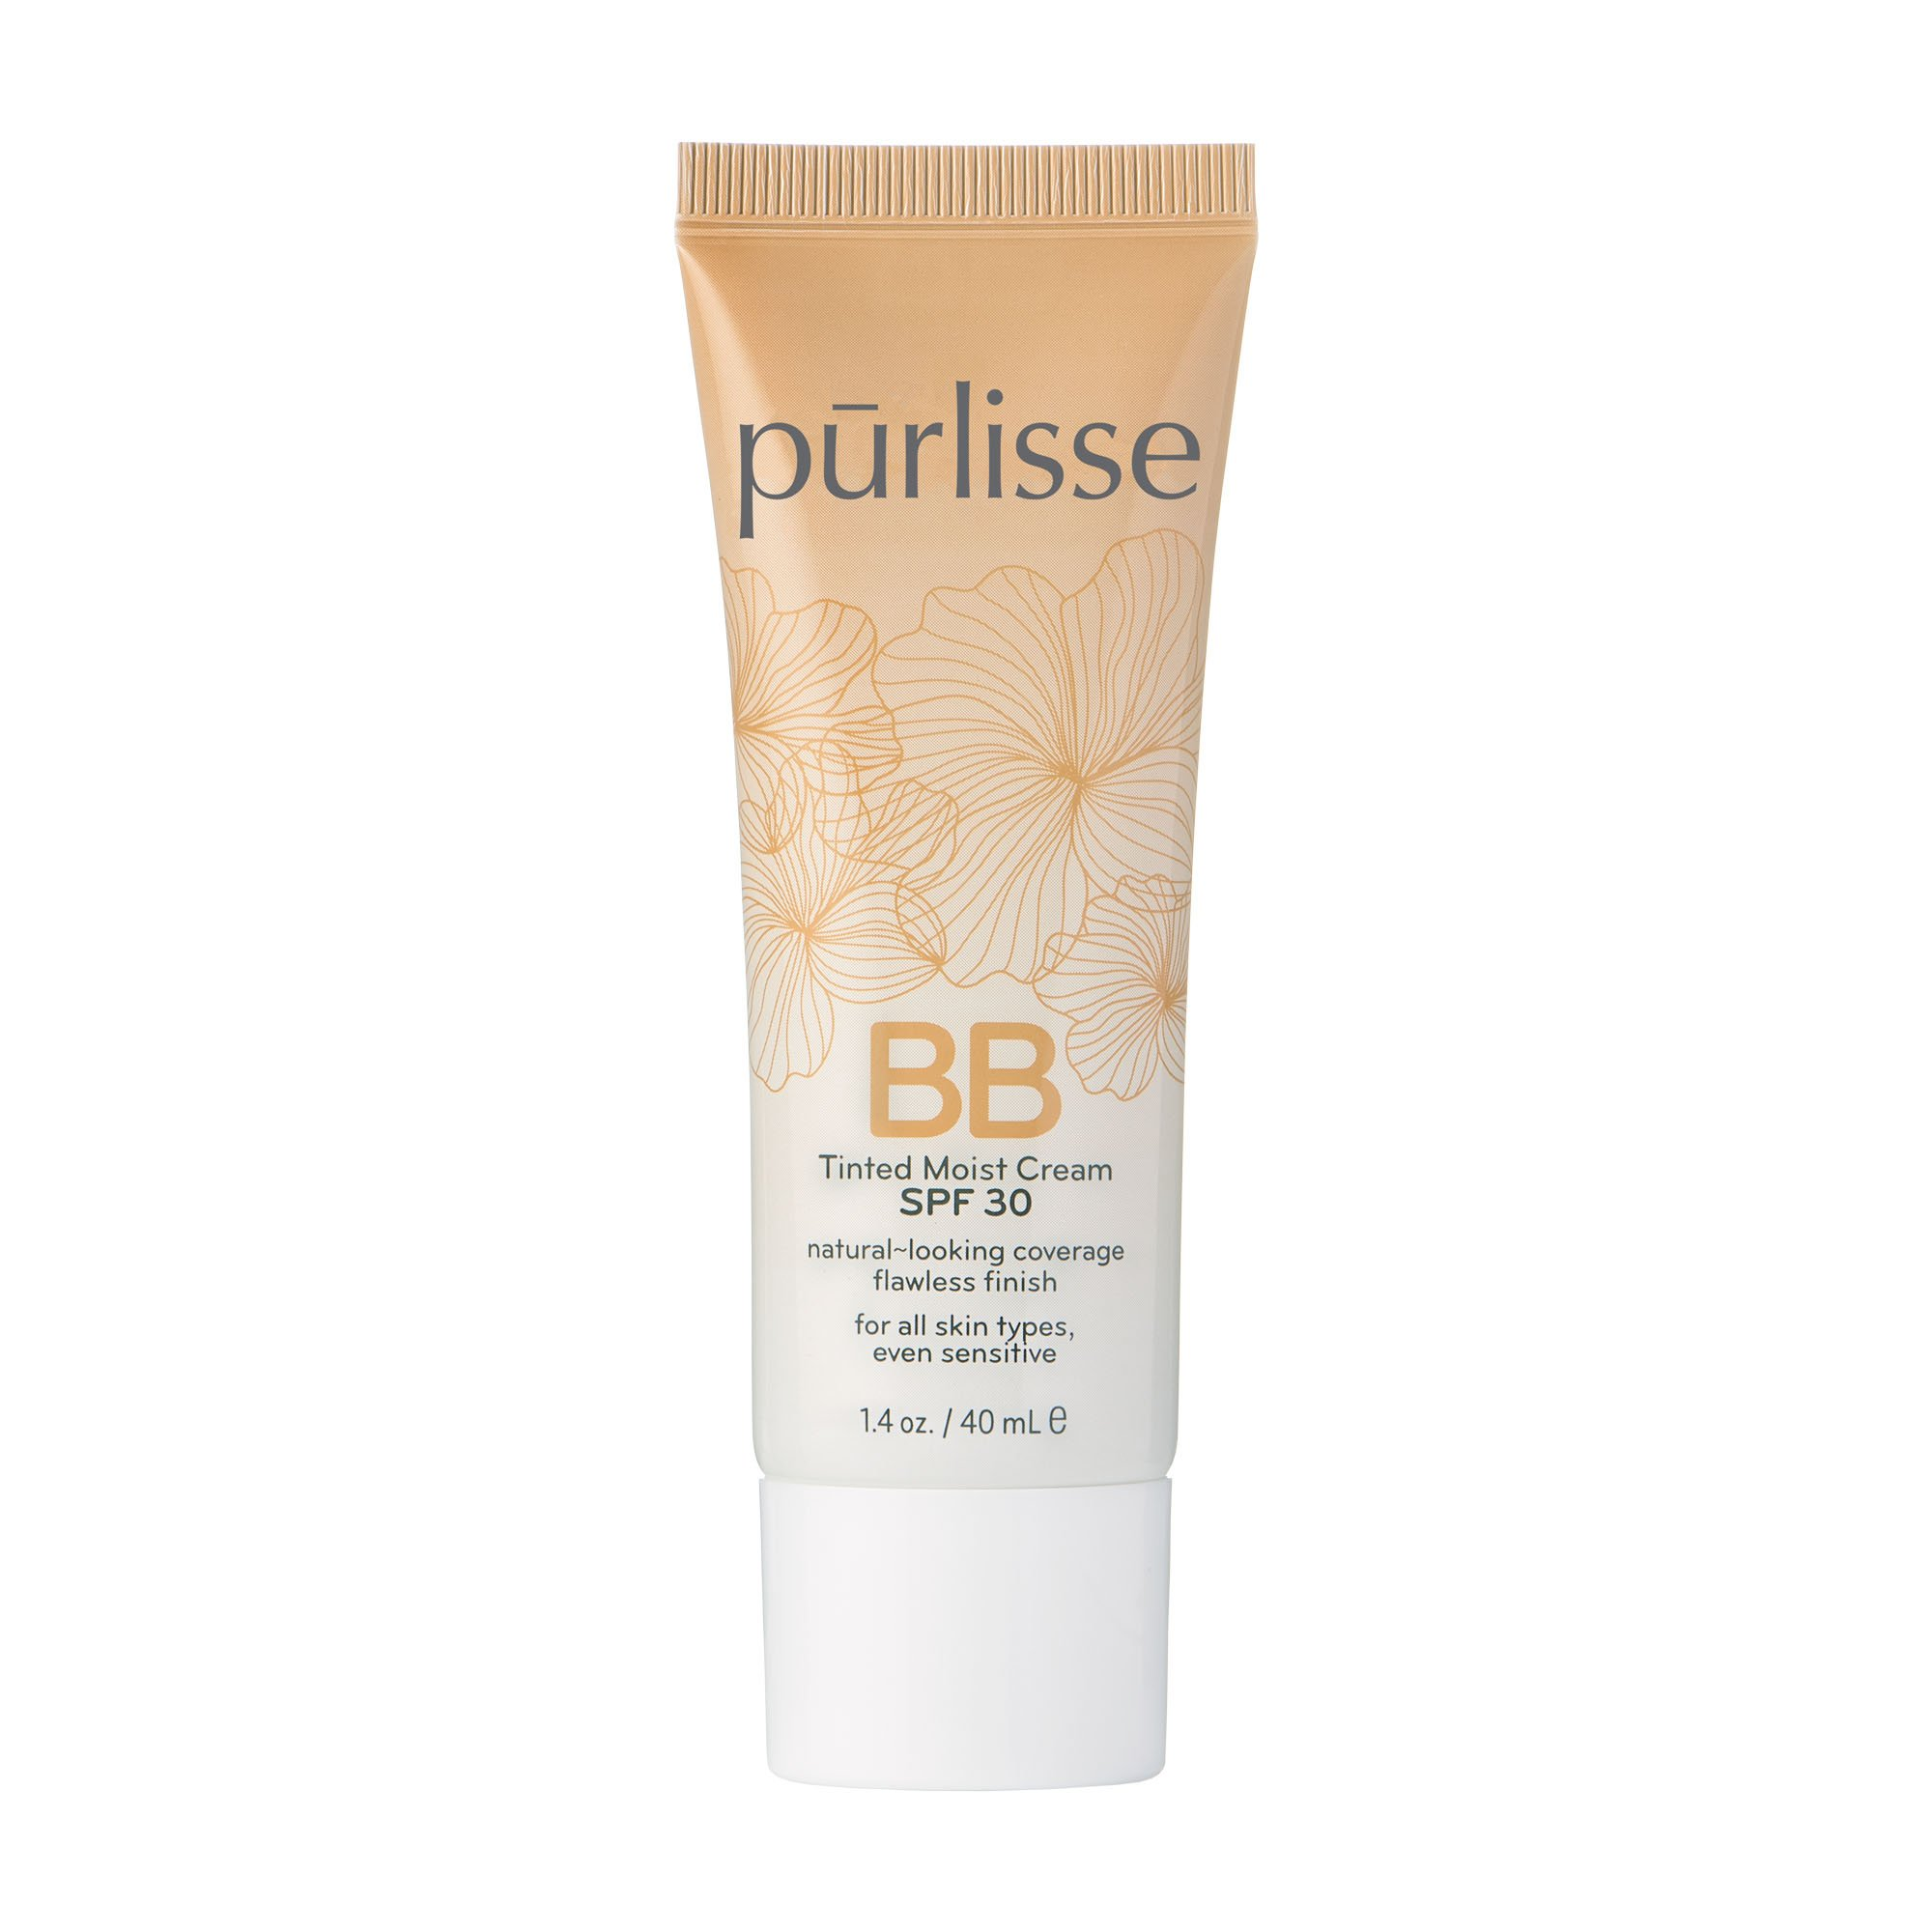 purlisse pur-delicate cleansing cream, 5.07 ounce Soignee Botanical Moisture Maximizer Night Creme with MSM, 2 fl oz